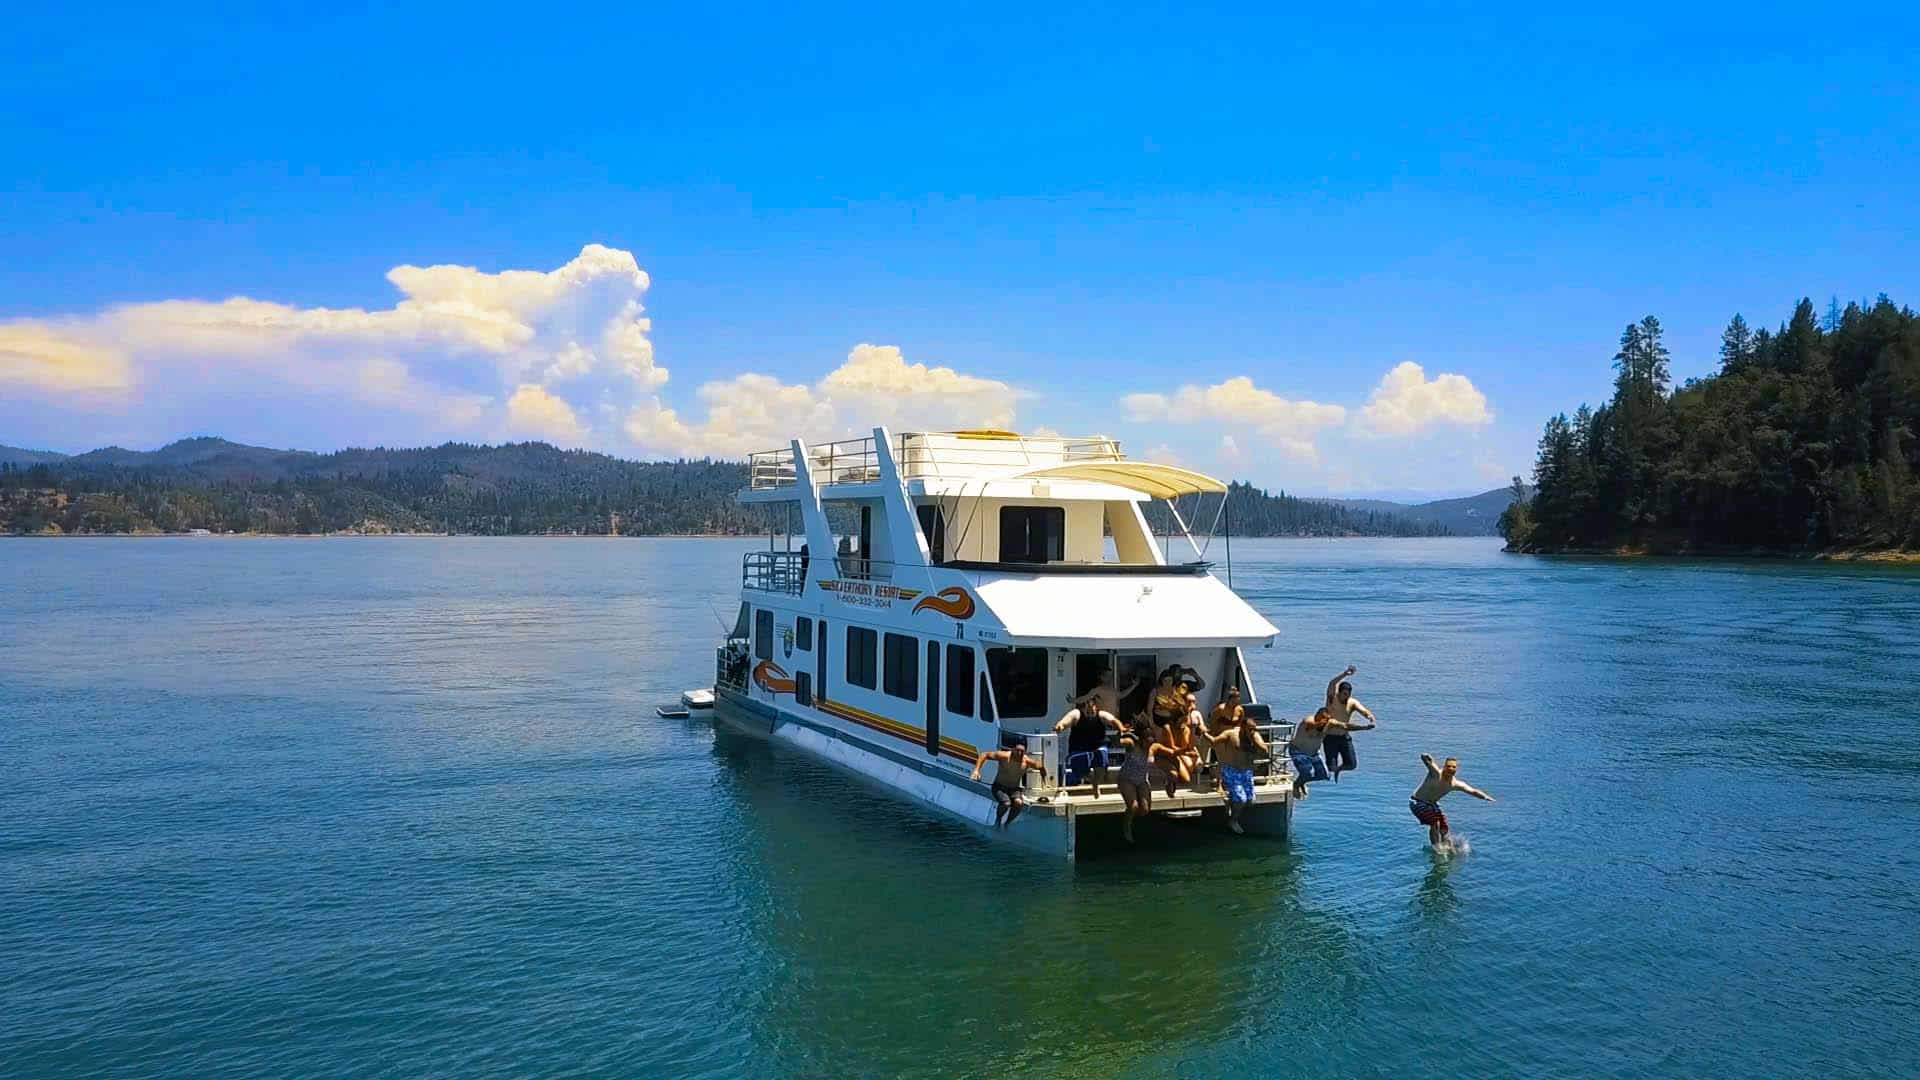 Jumping off the front of a houseboat on Lake Shasta, taken from a drone 100 ft away